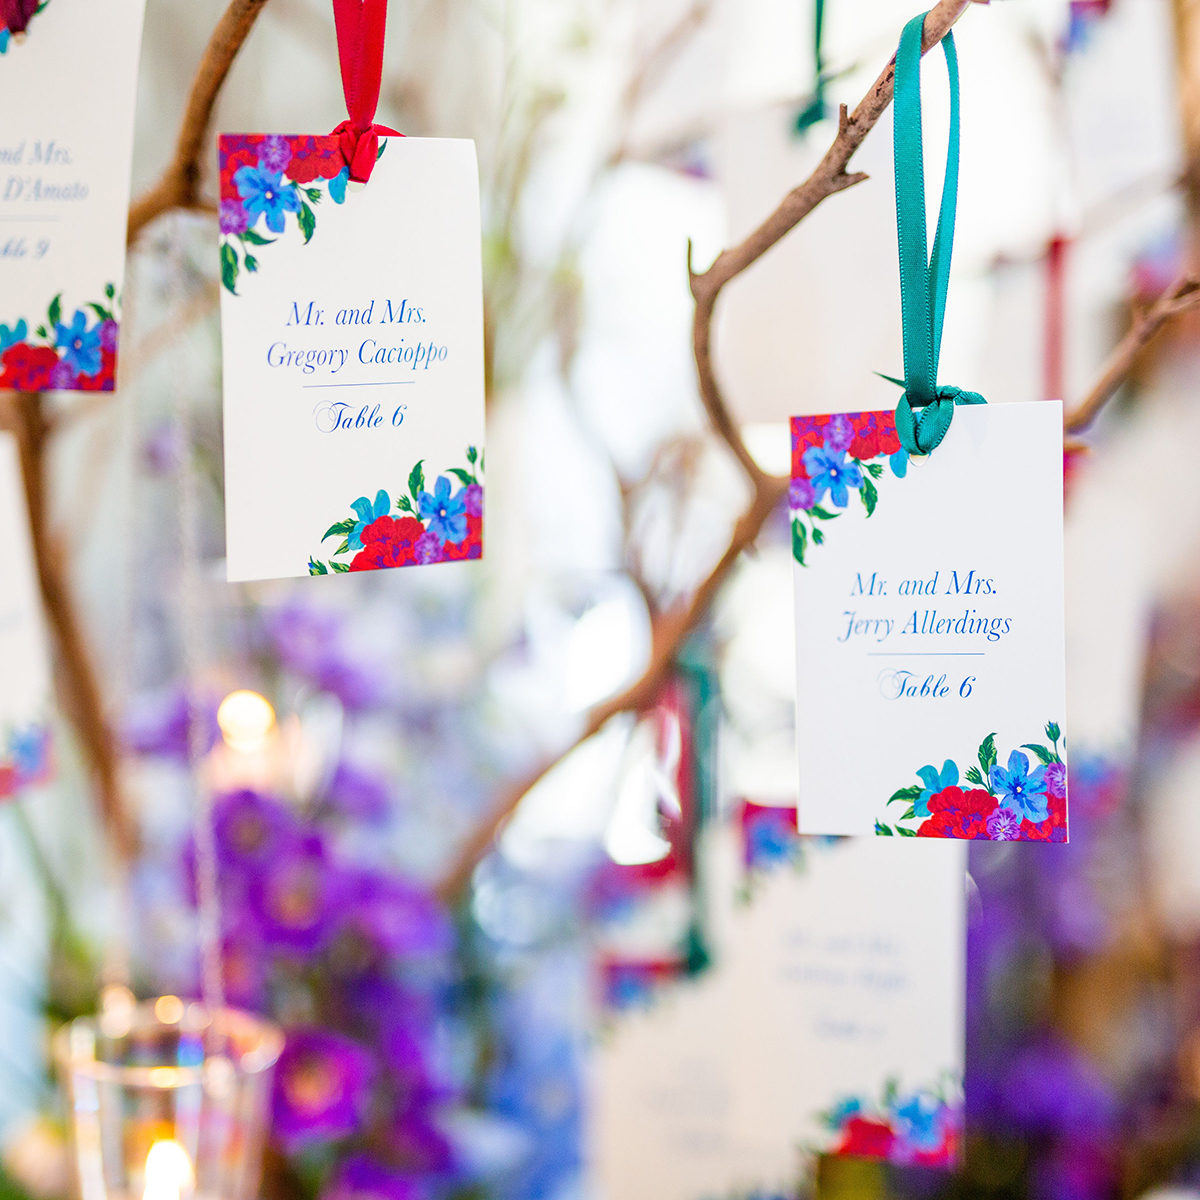 Vibrant jewel tone floral escort cards hanging from a tree branch